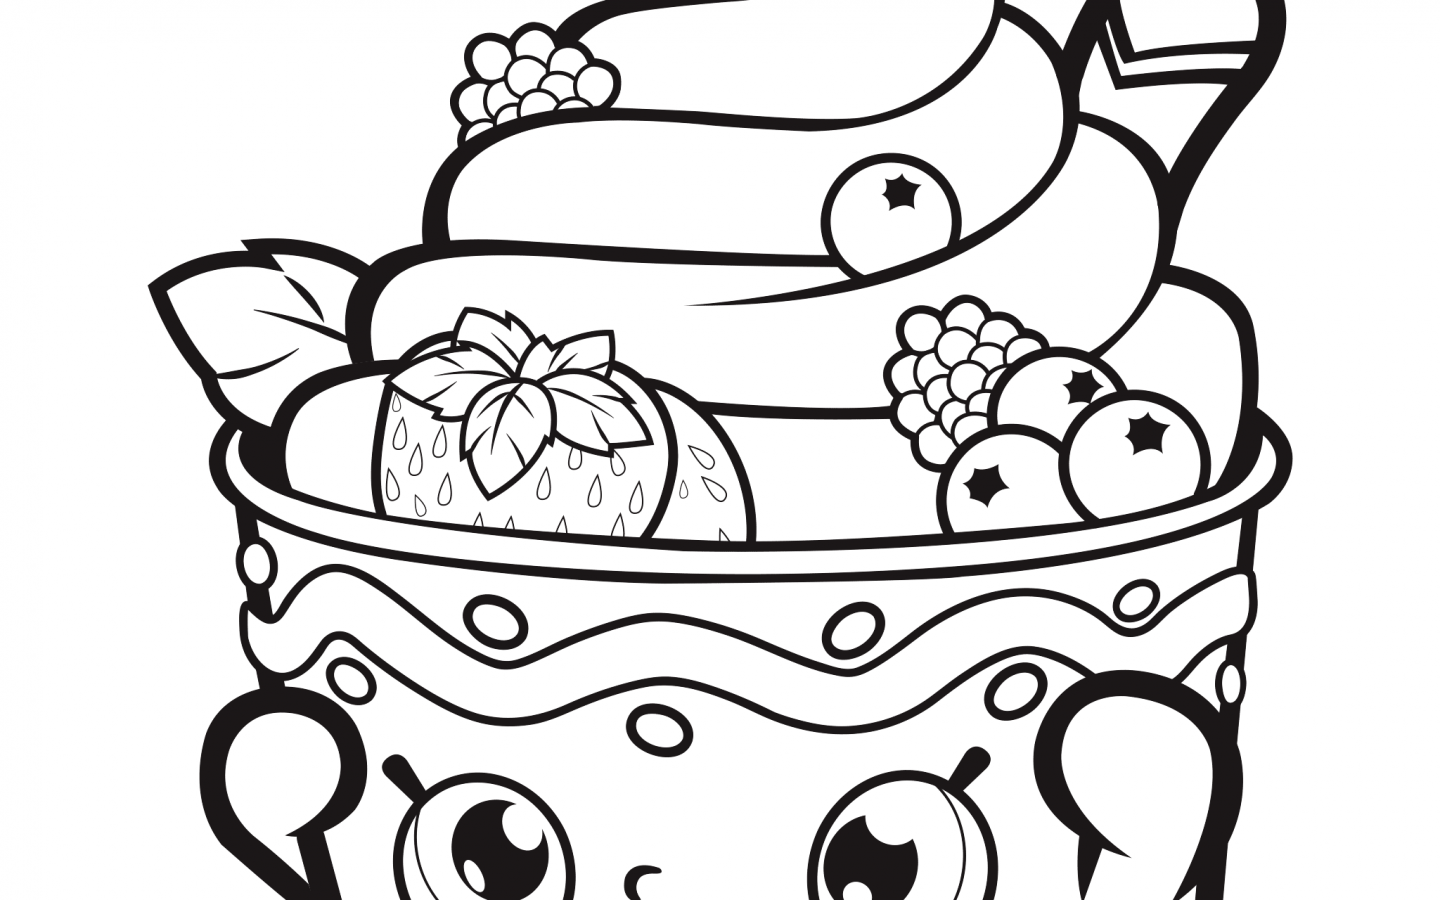 1440x900 Water Melon Ice Cream Coloring Page Free Printable Pages For Kids